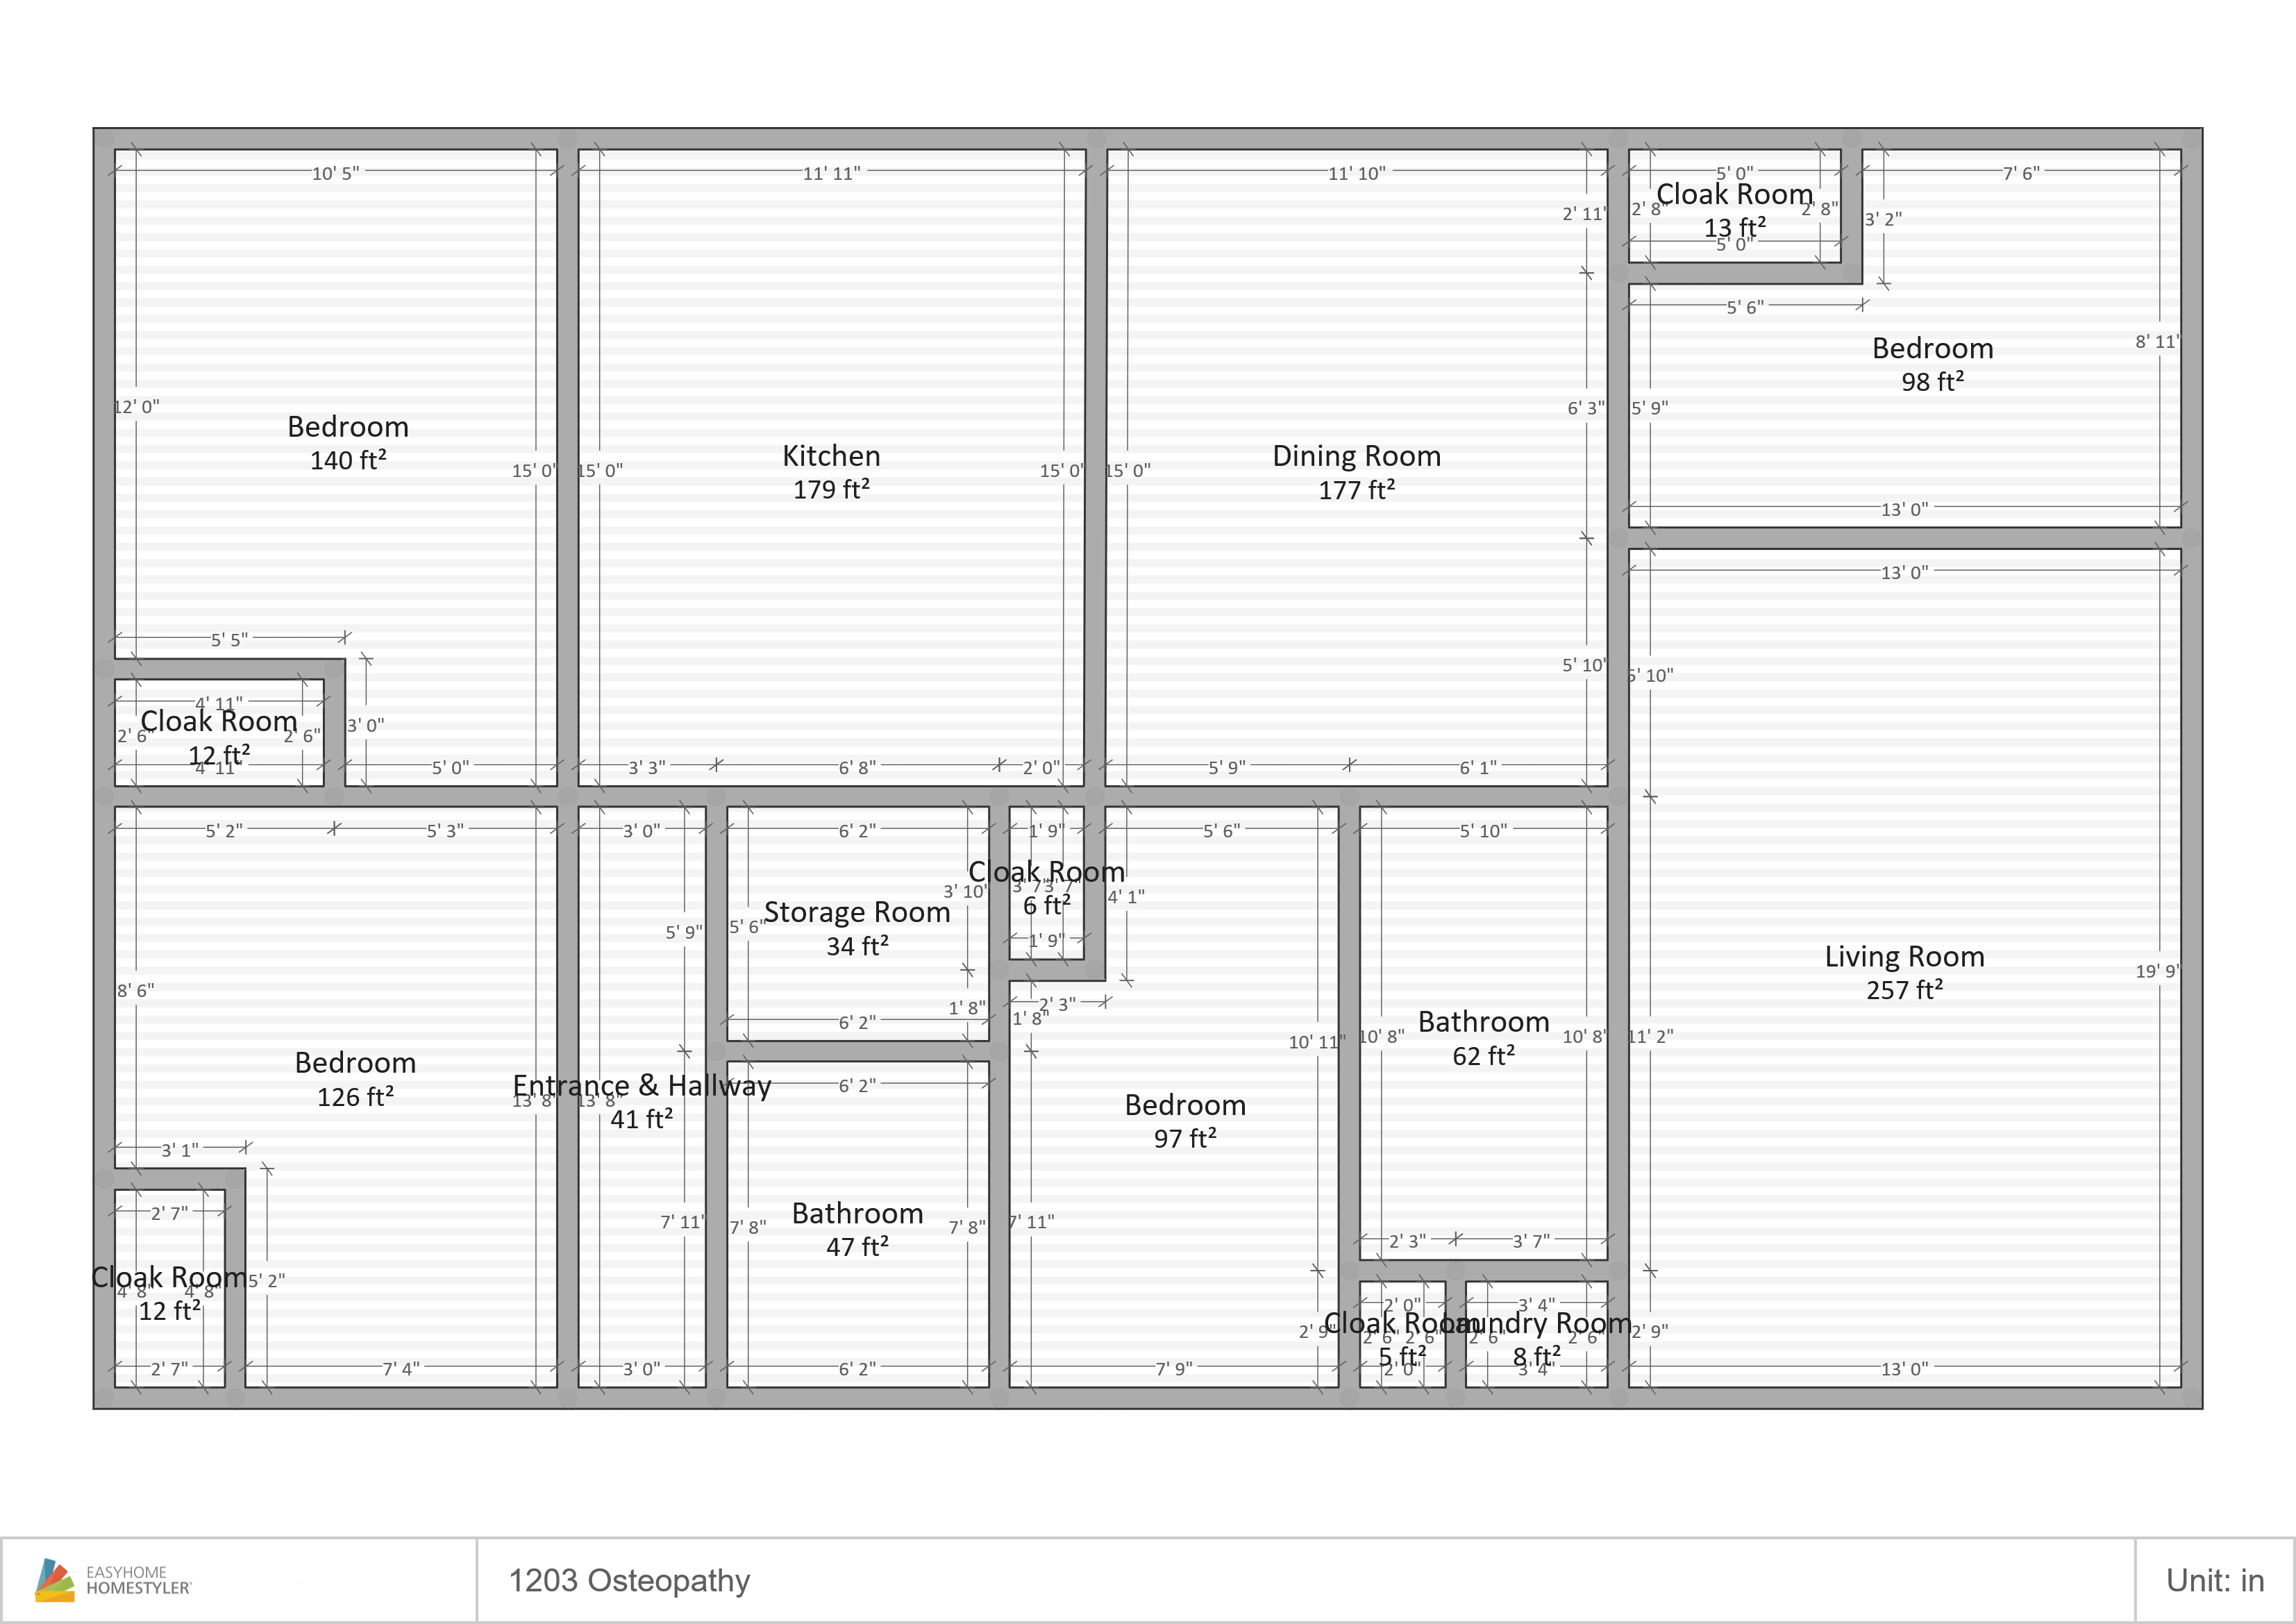 1203 Ost Floor Plan